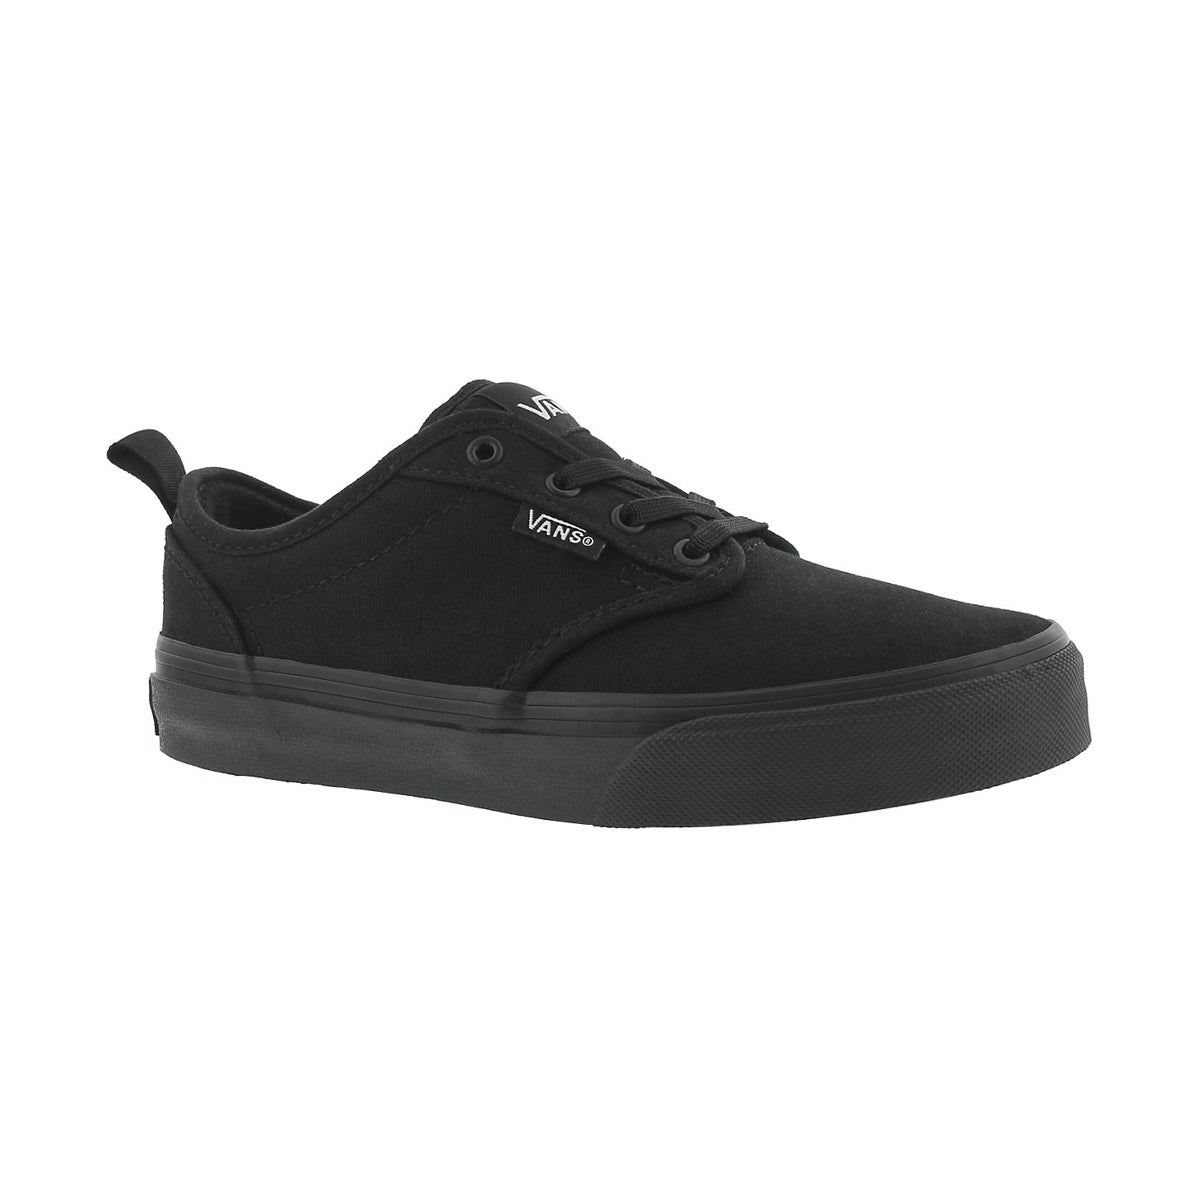 Boys' ATWOOD black/black slip on sneakers